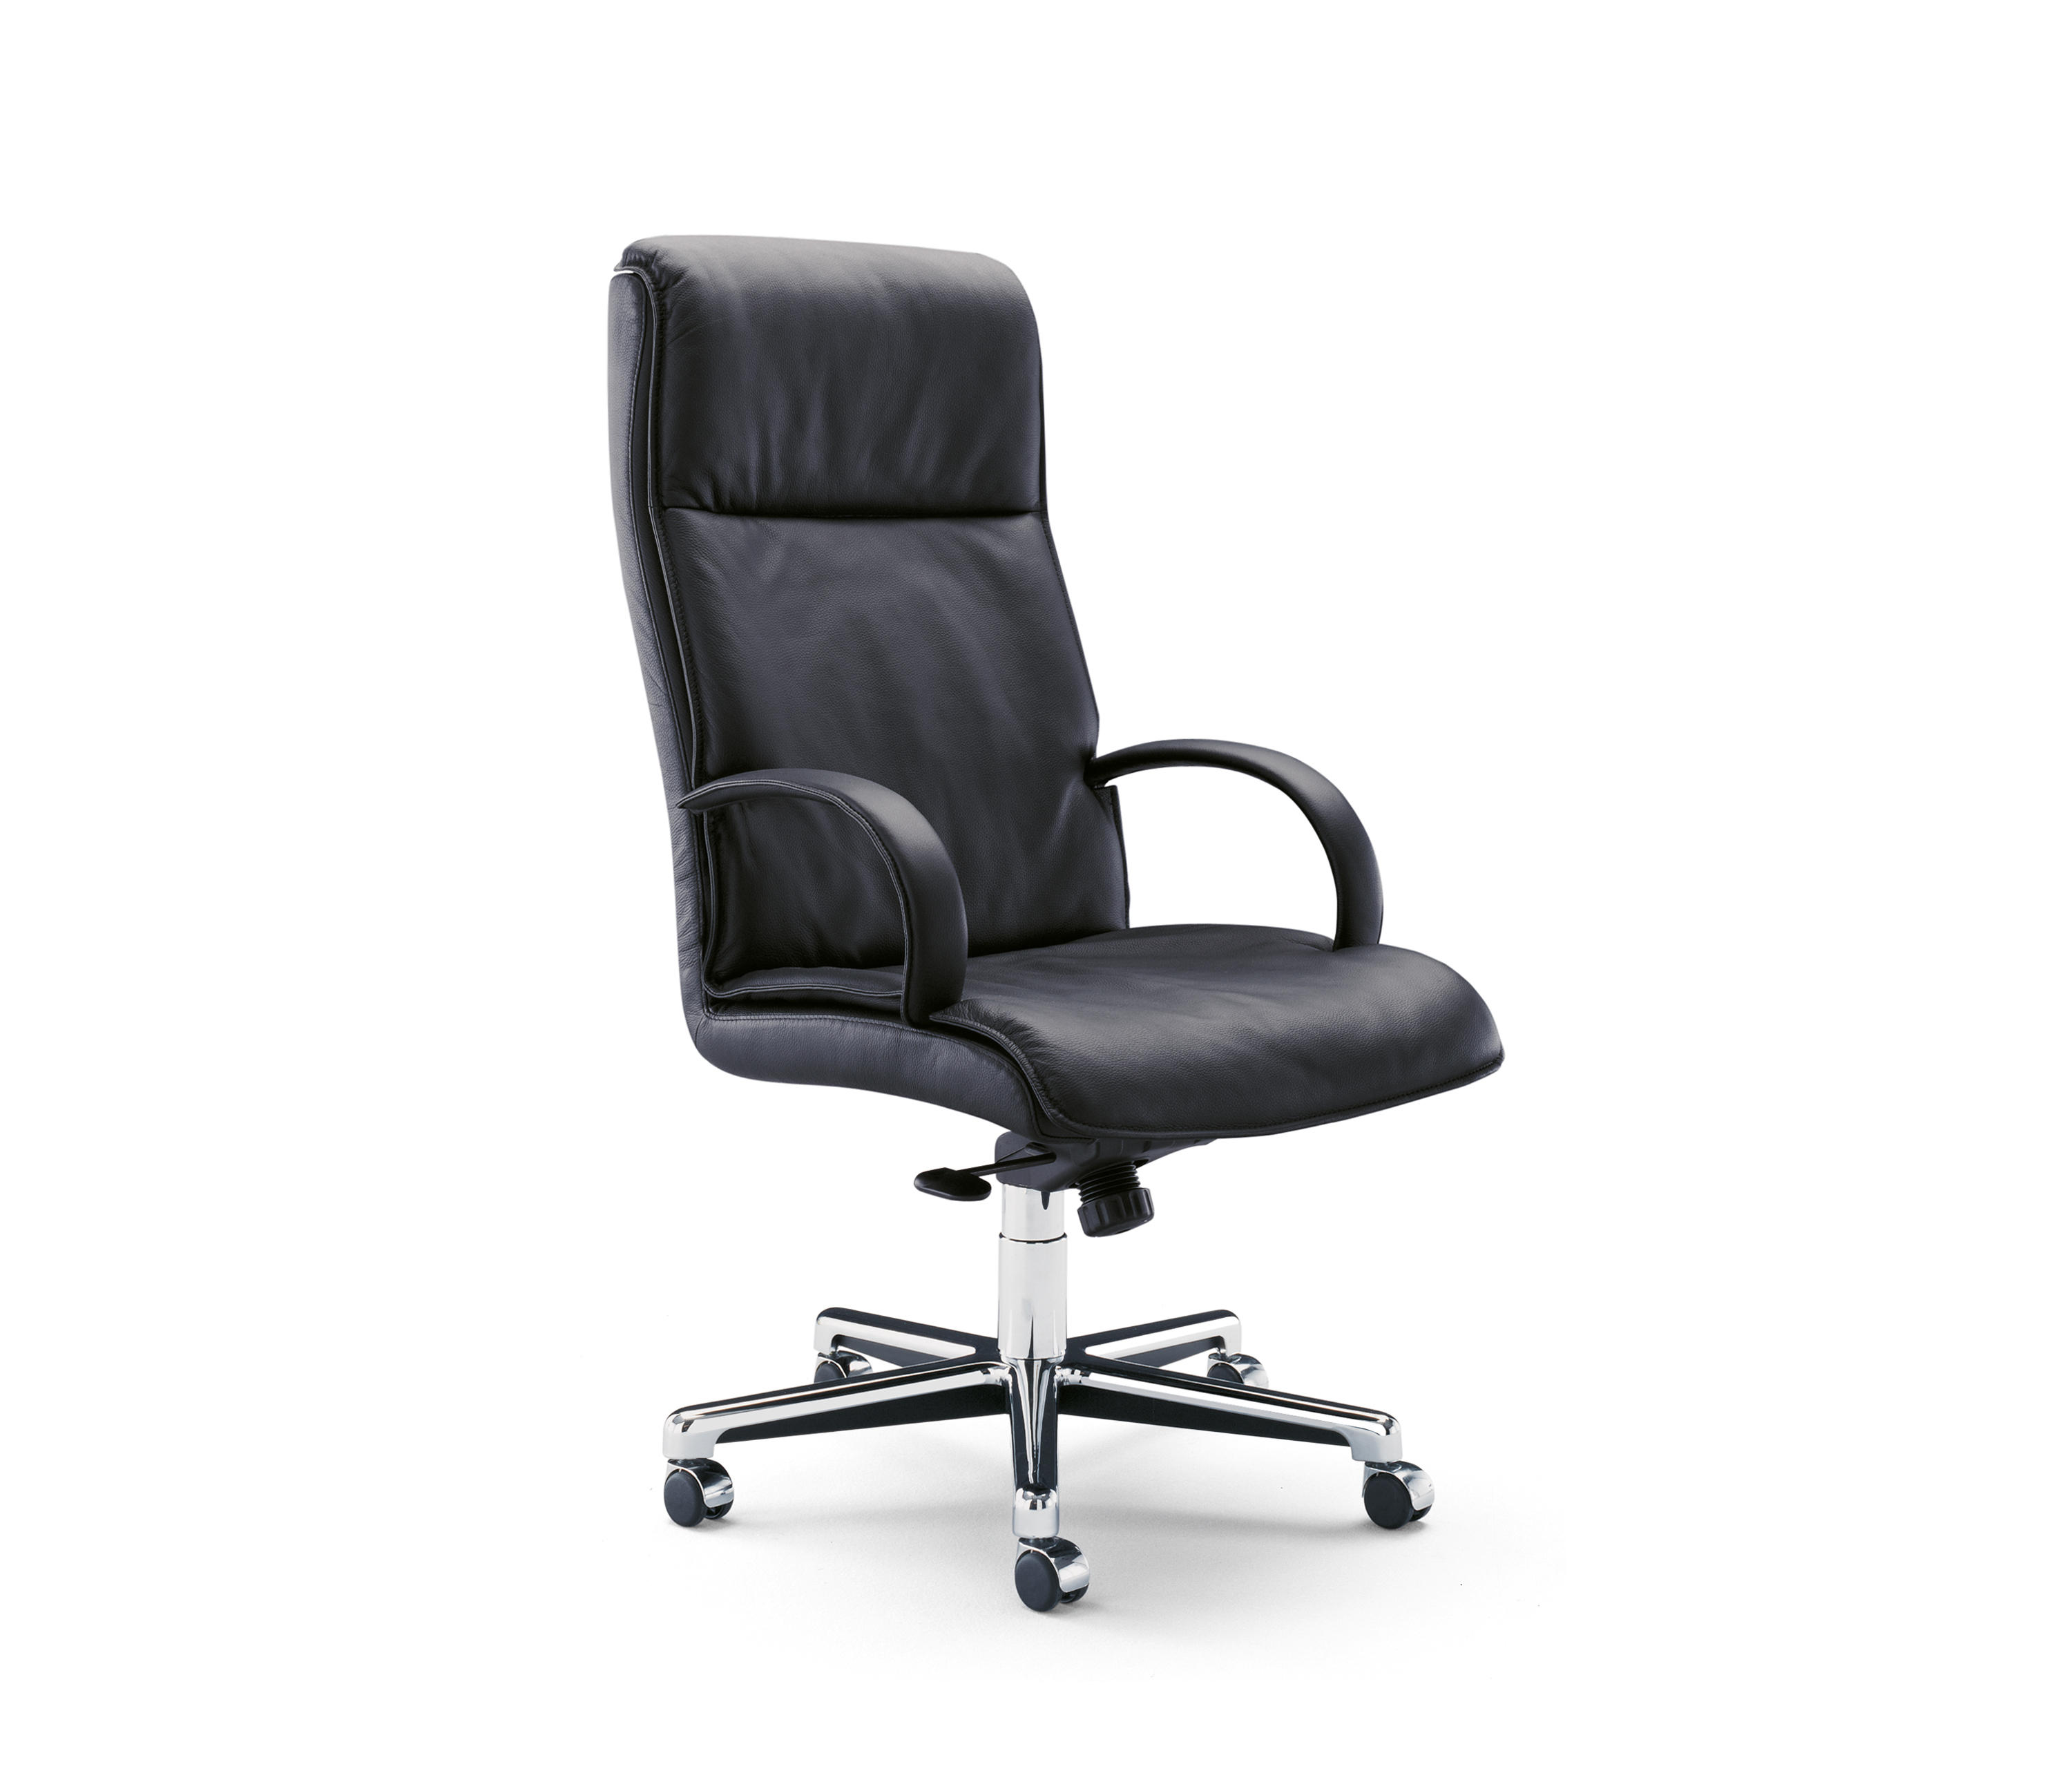 QUATTRO EXECUTIVE CHAIR Executive chairs from Walter Knoll